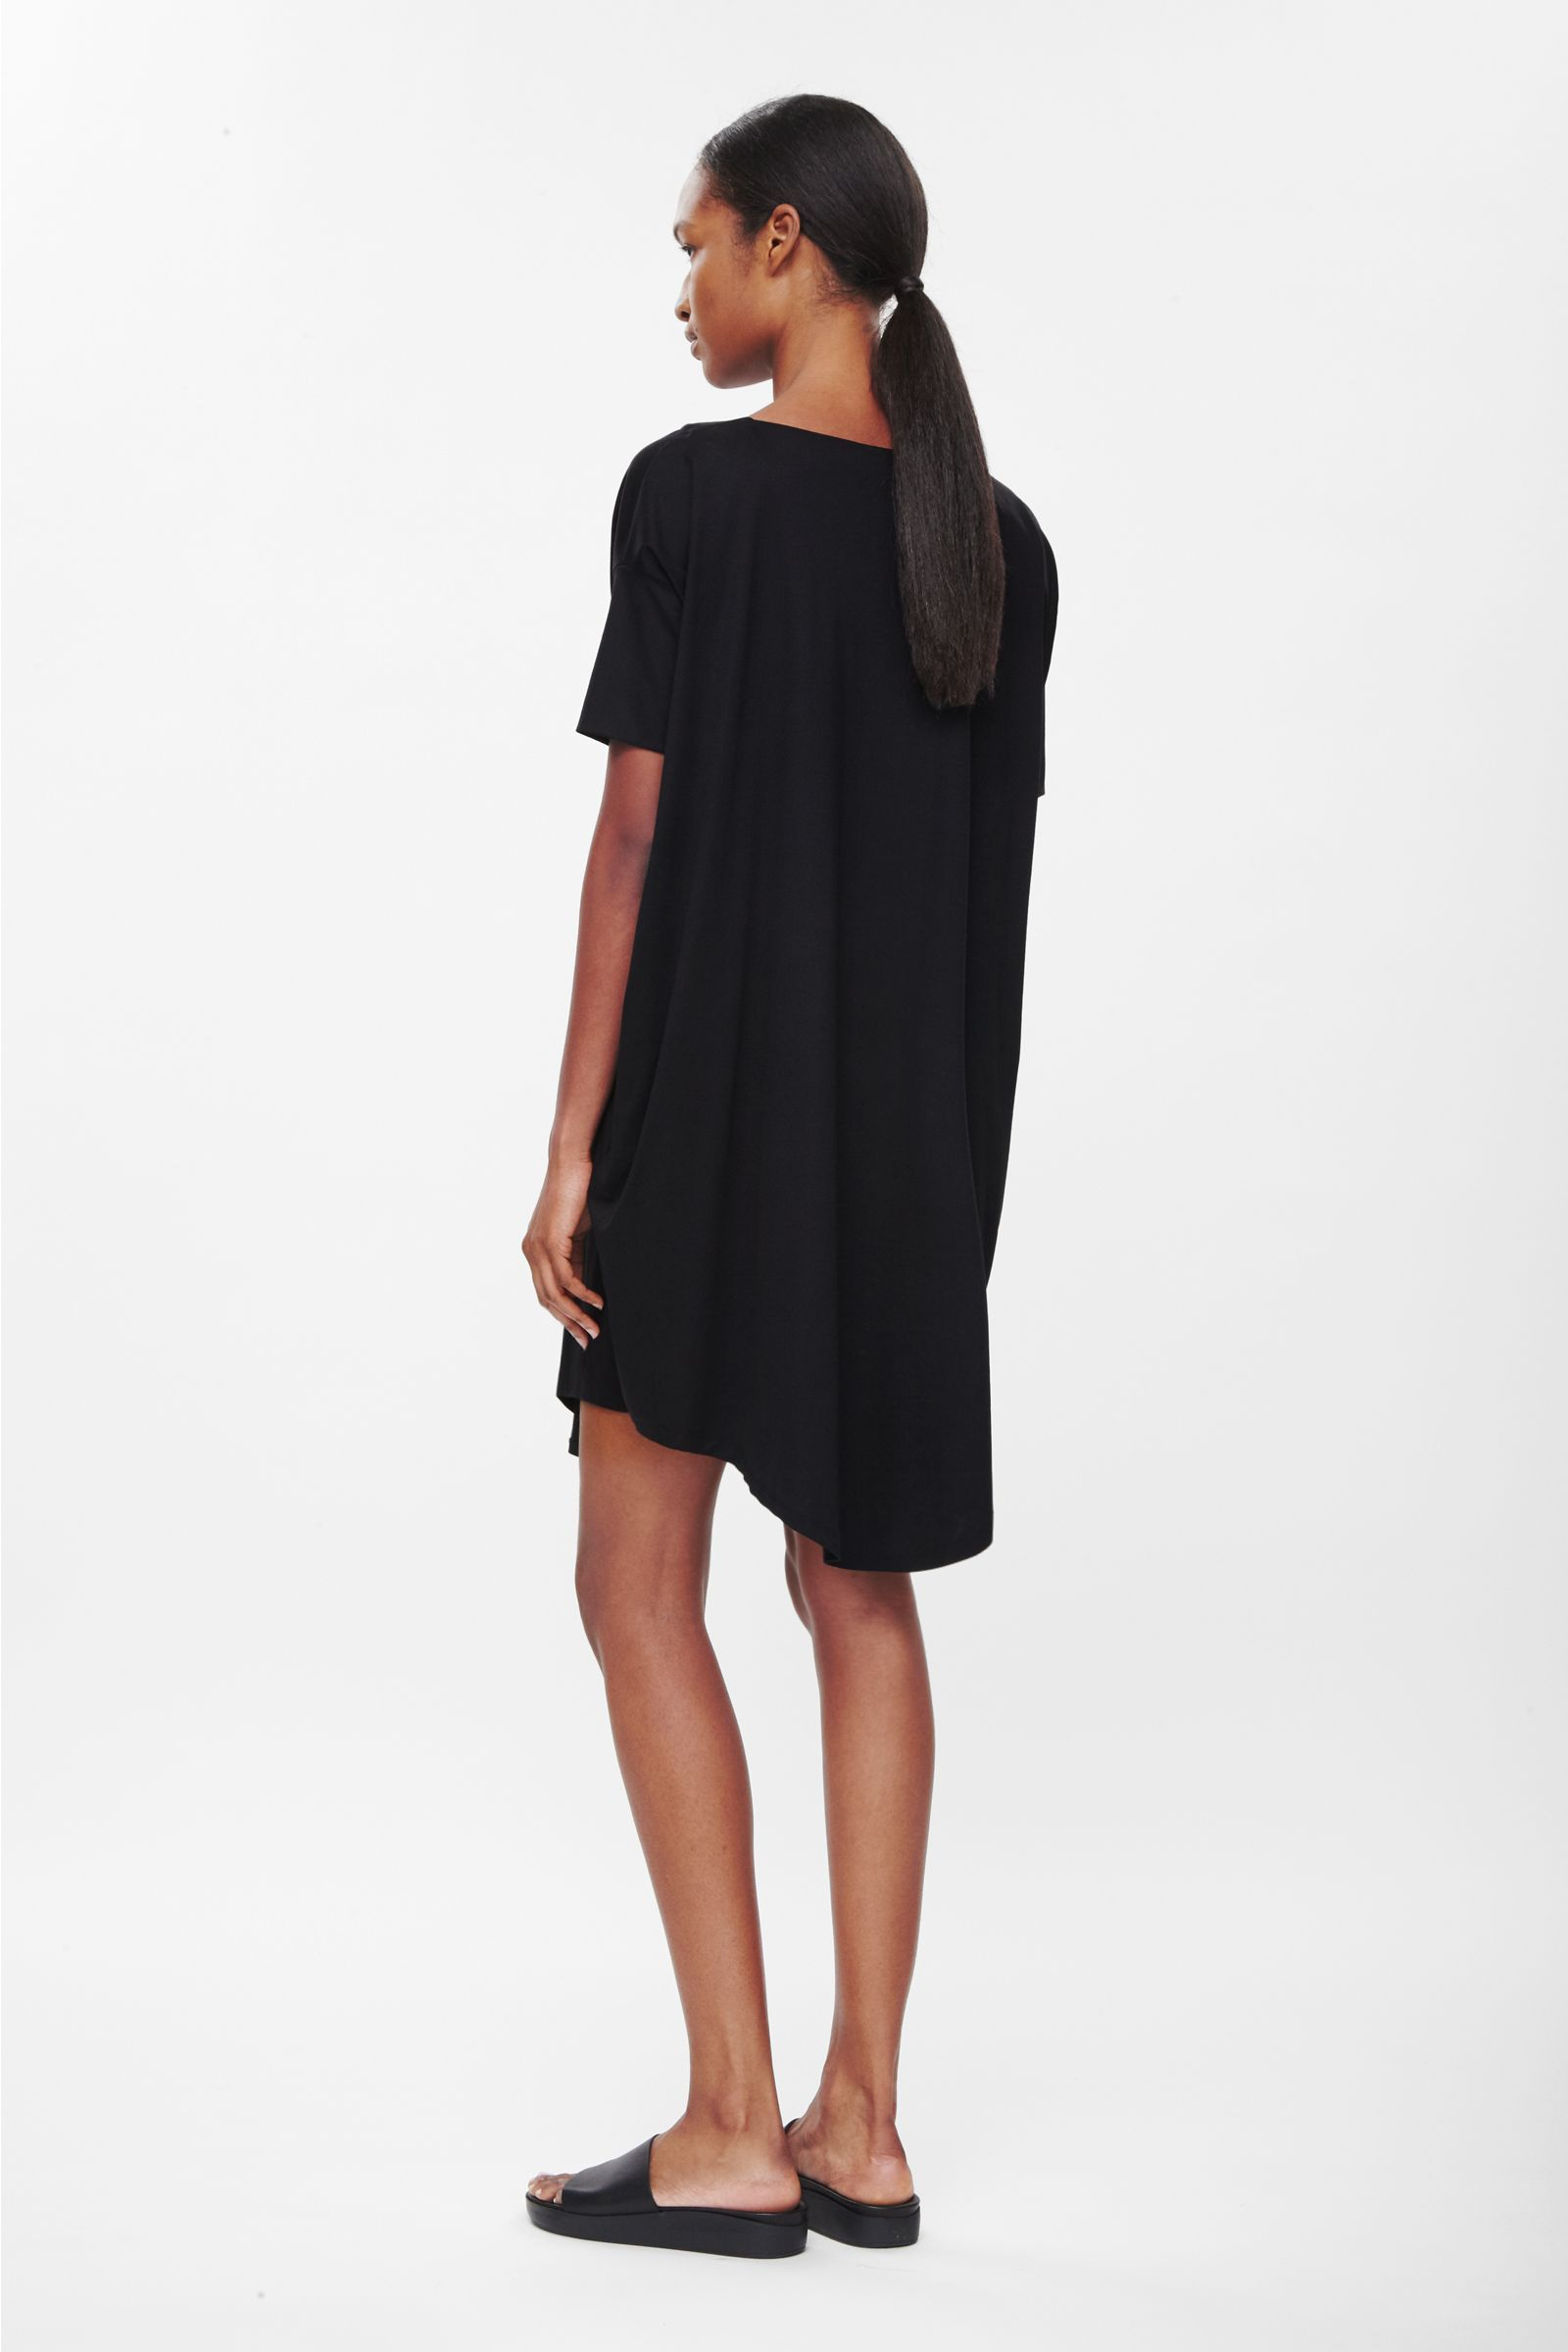 A rounded cocoon shape that tapers towards a curved hemline, this slip-on dress is made from smooth cotton jersey. Designed for everyday wear, it has dropped shoulder seams, square-cut sleeves and in-seam side pockets.